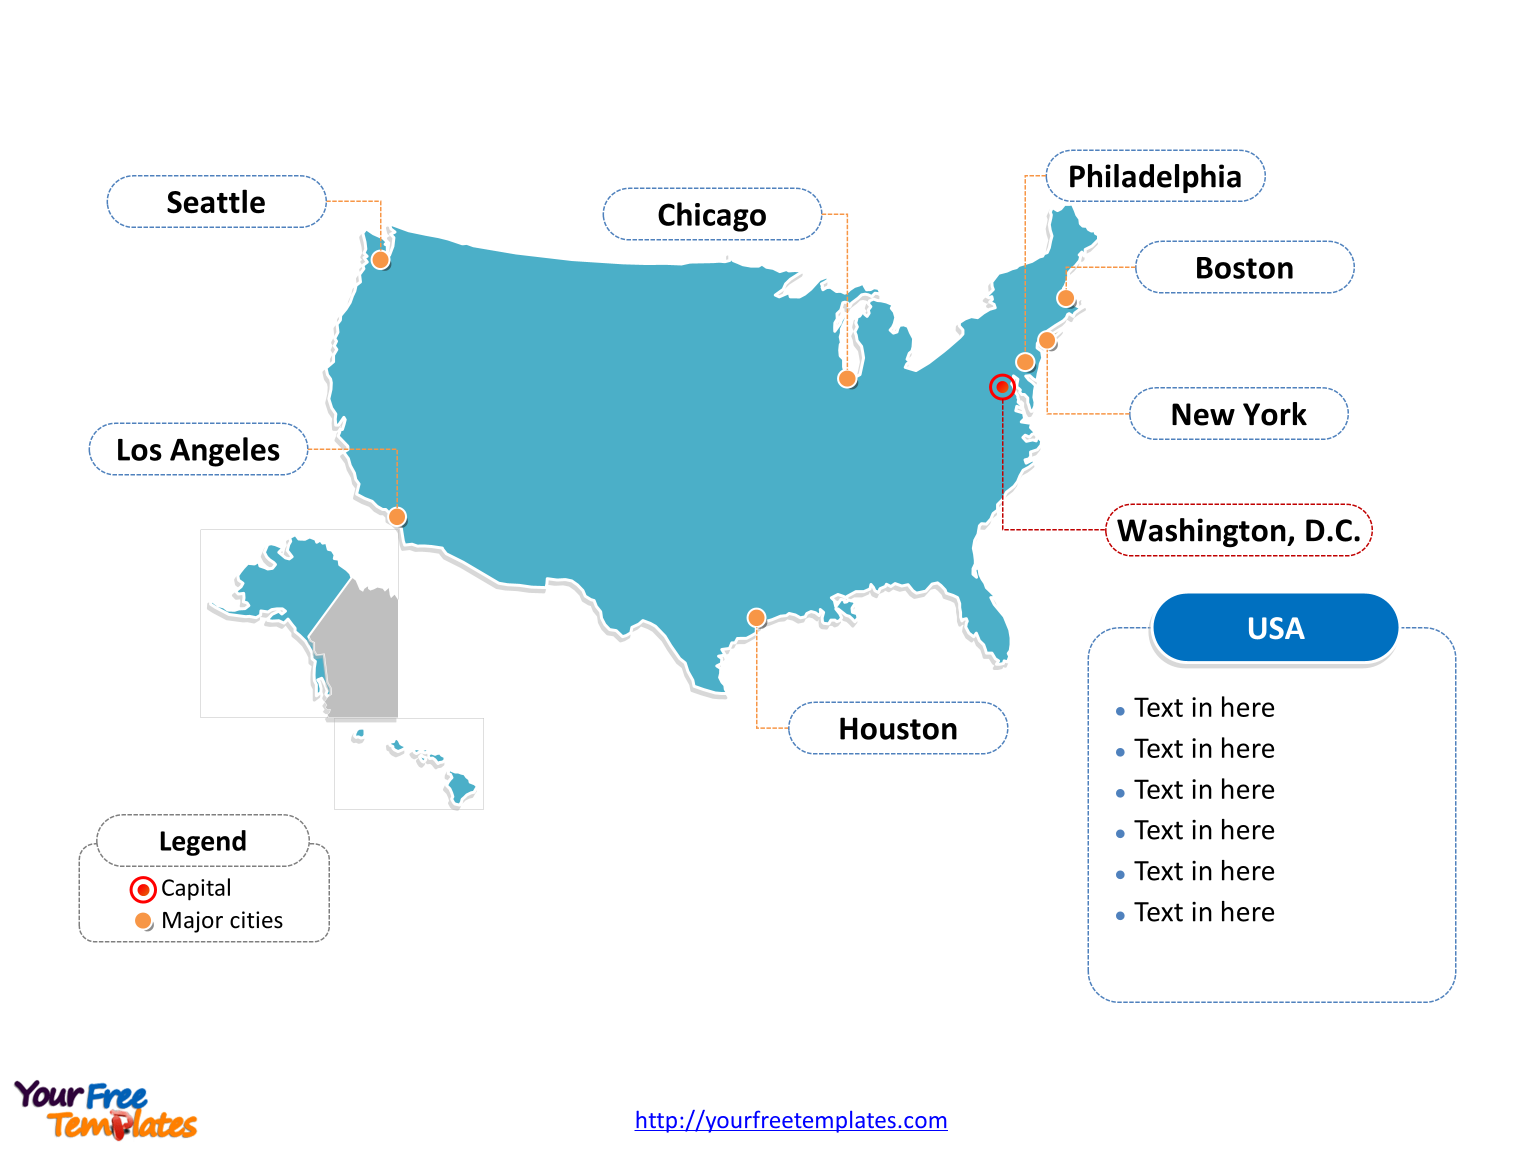 Free usa powerpoint map free powerpoint templates usa powerpoint map of outline labeled with cities toneelgroepblik Gallery